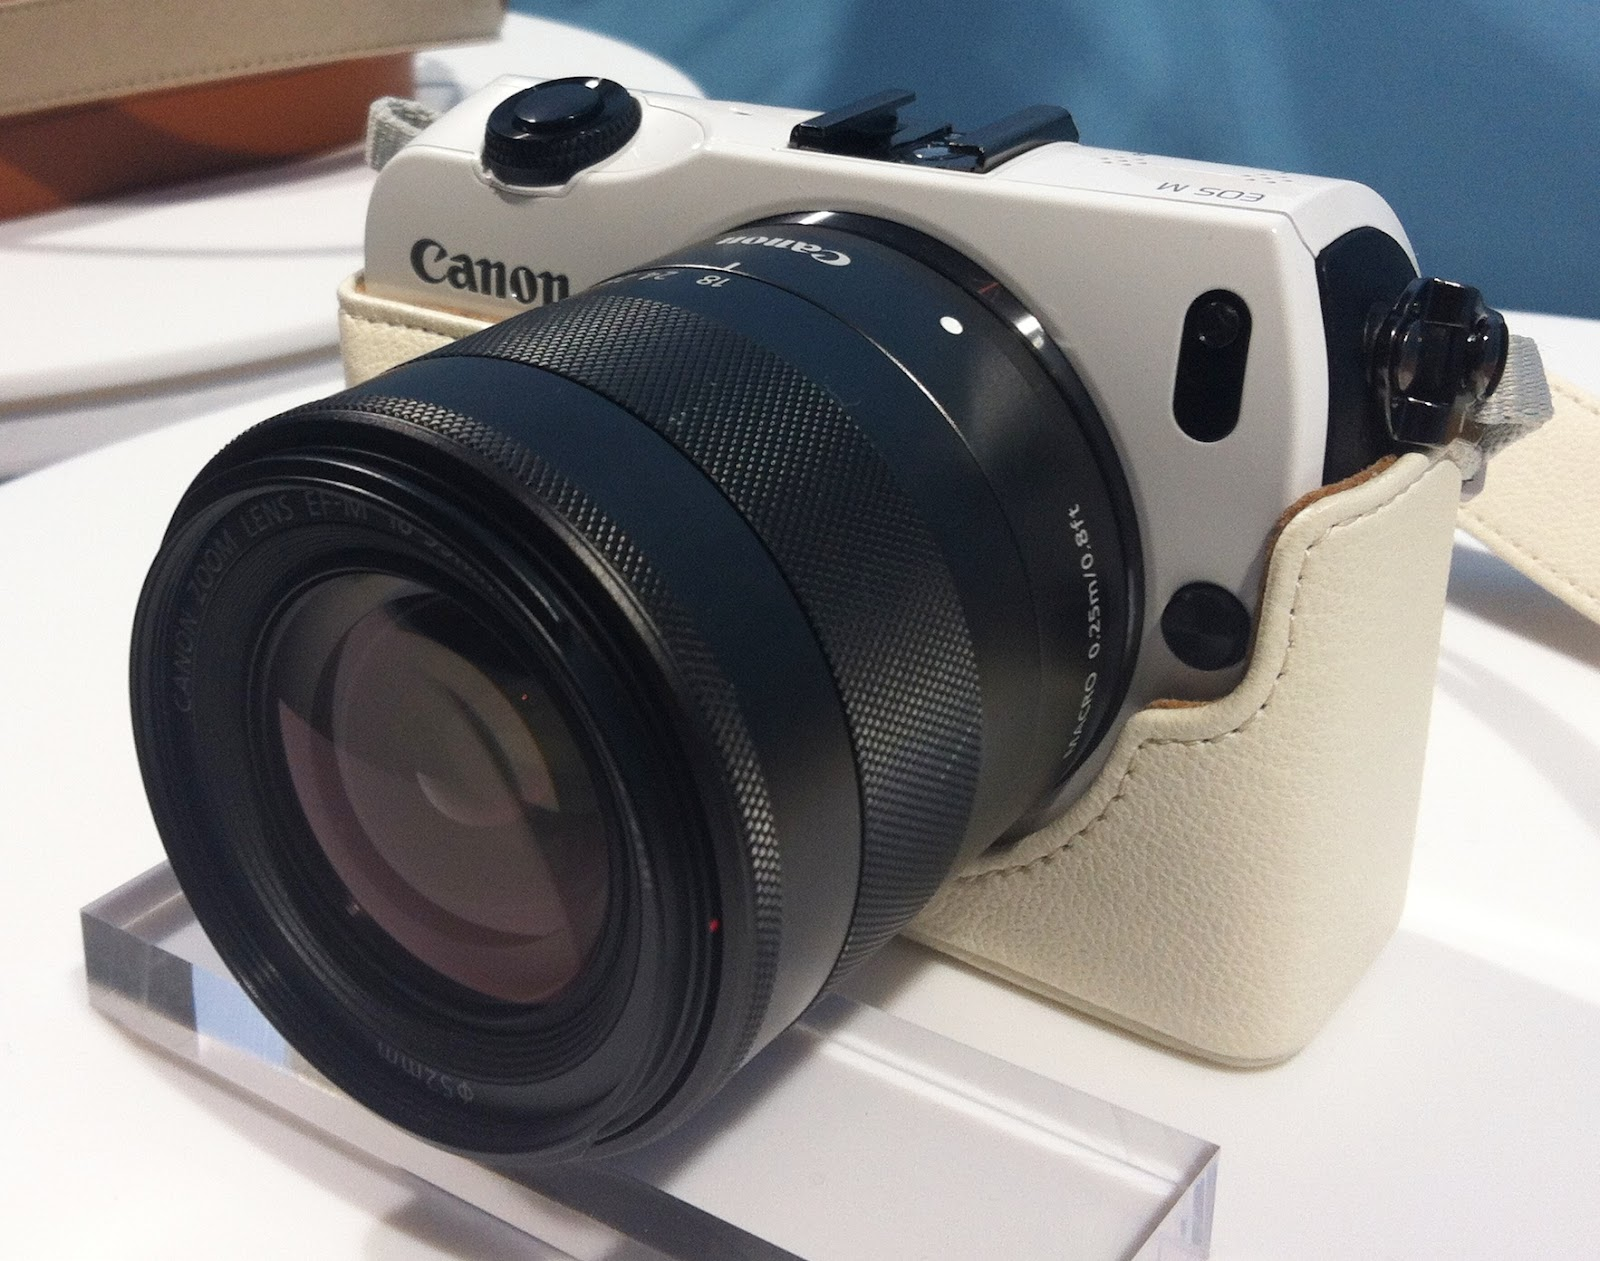 Photo of a Canon camera